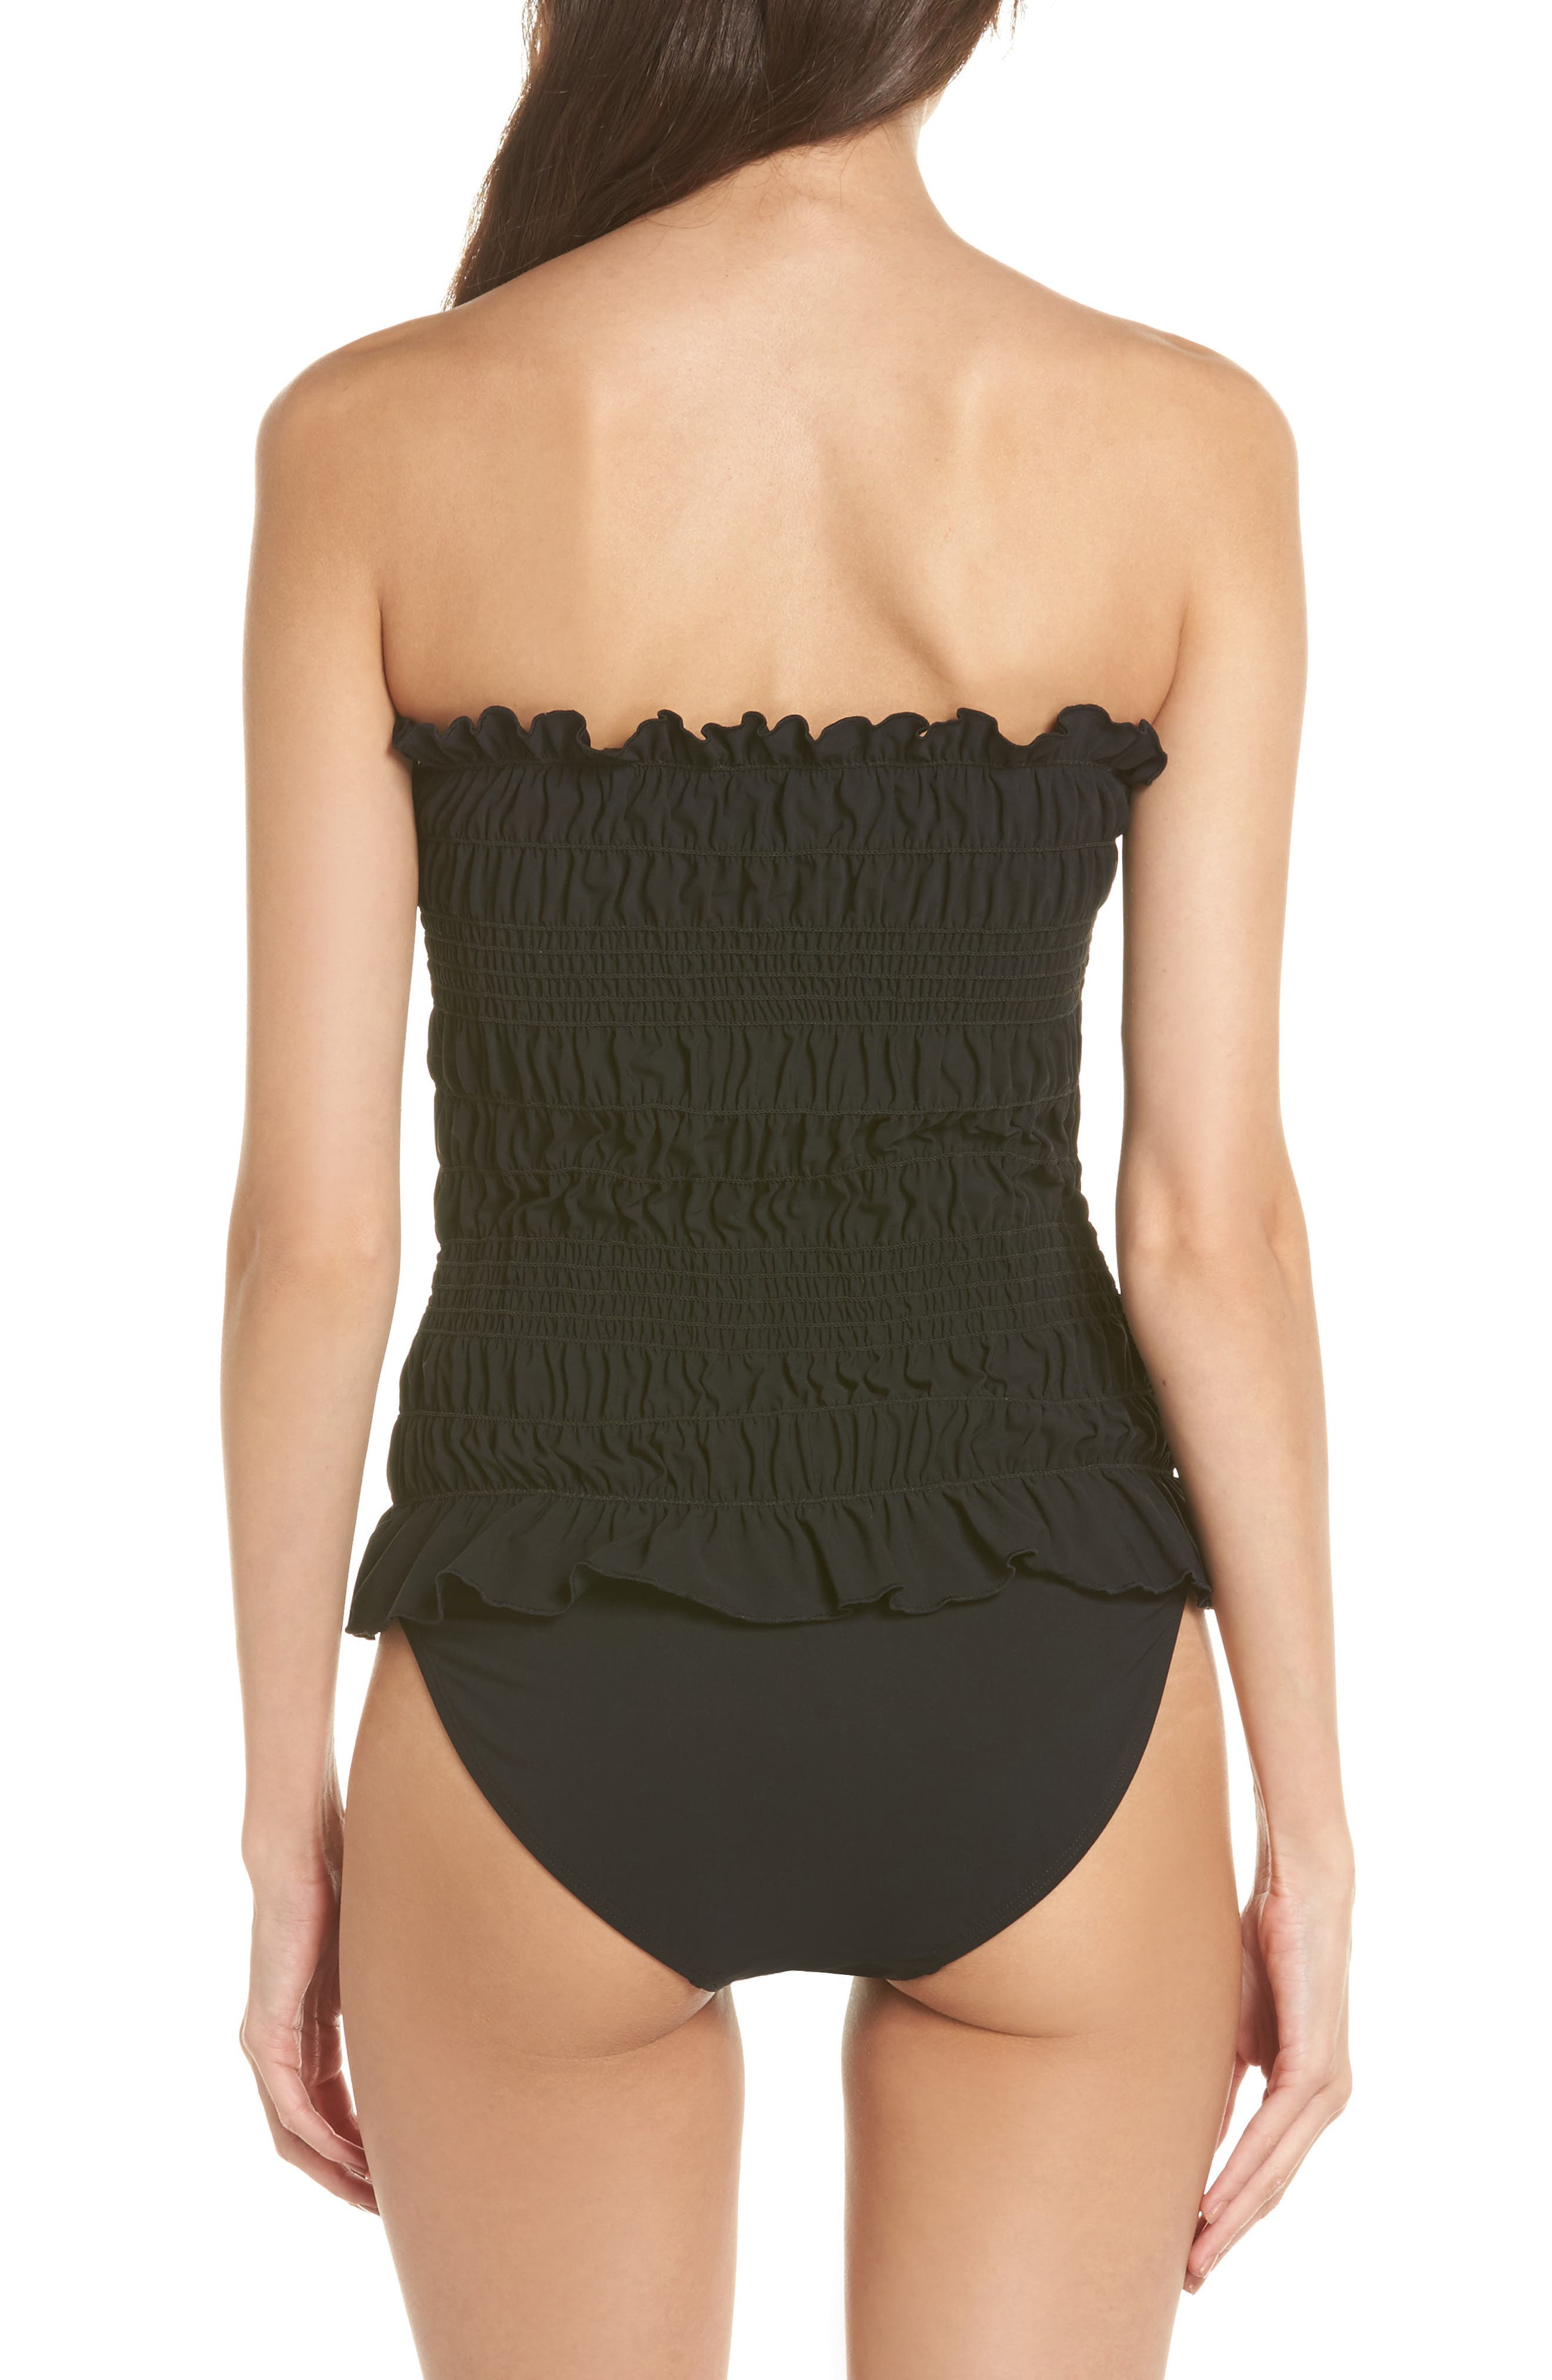 Costa Smocked One-Piece Swimsuit,                             Alternate thumbnail 2, color,                             009